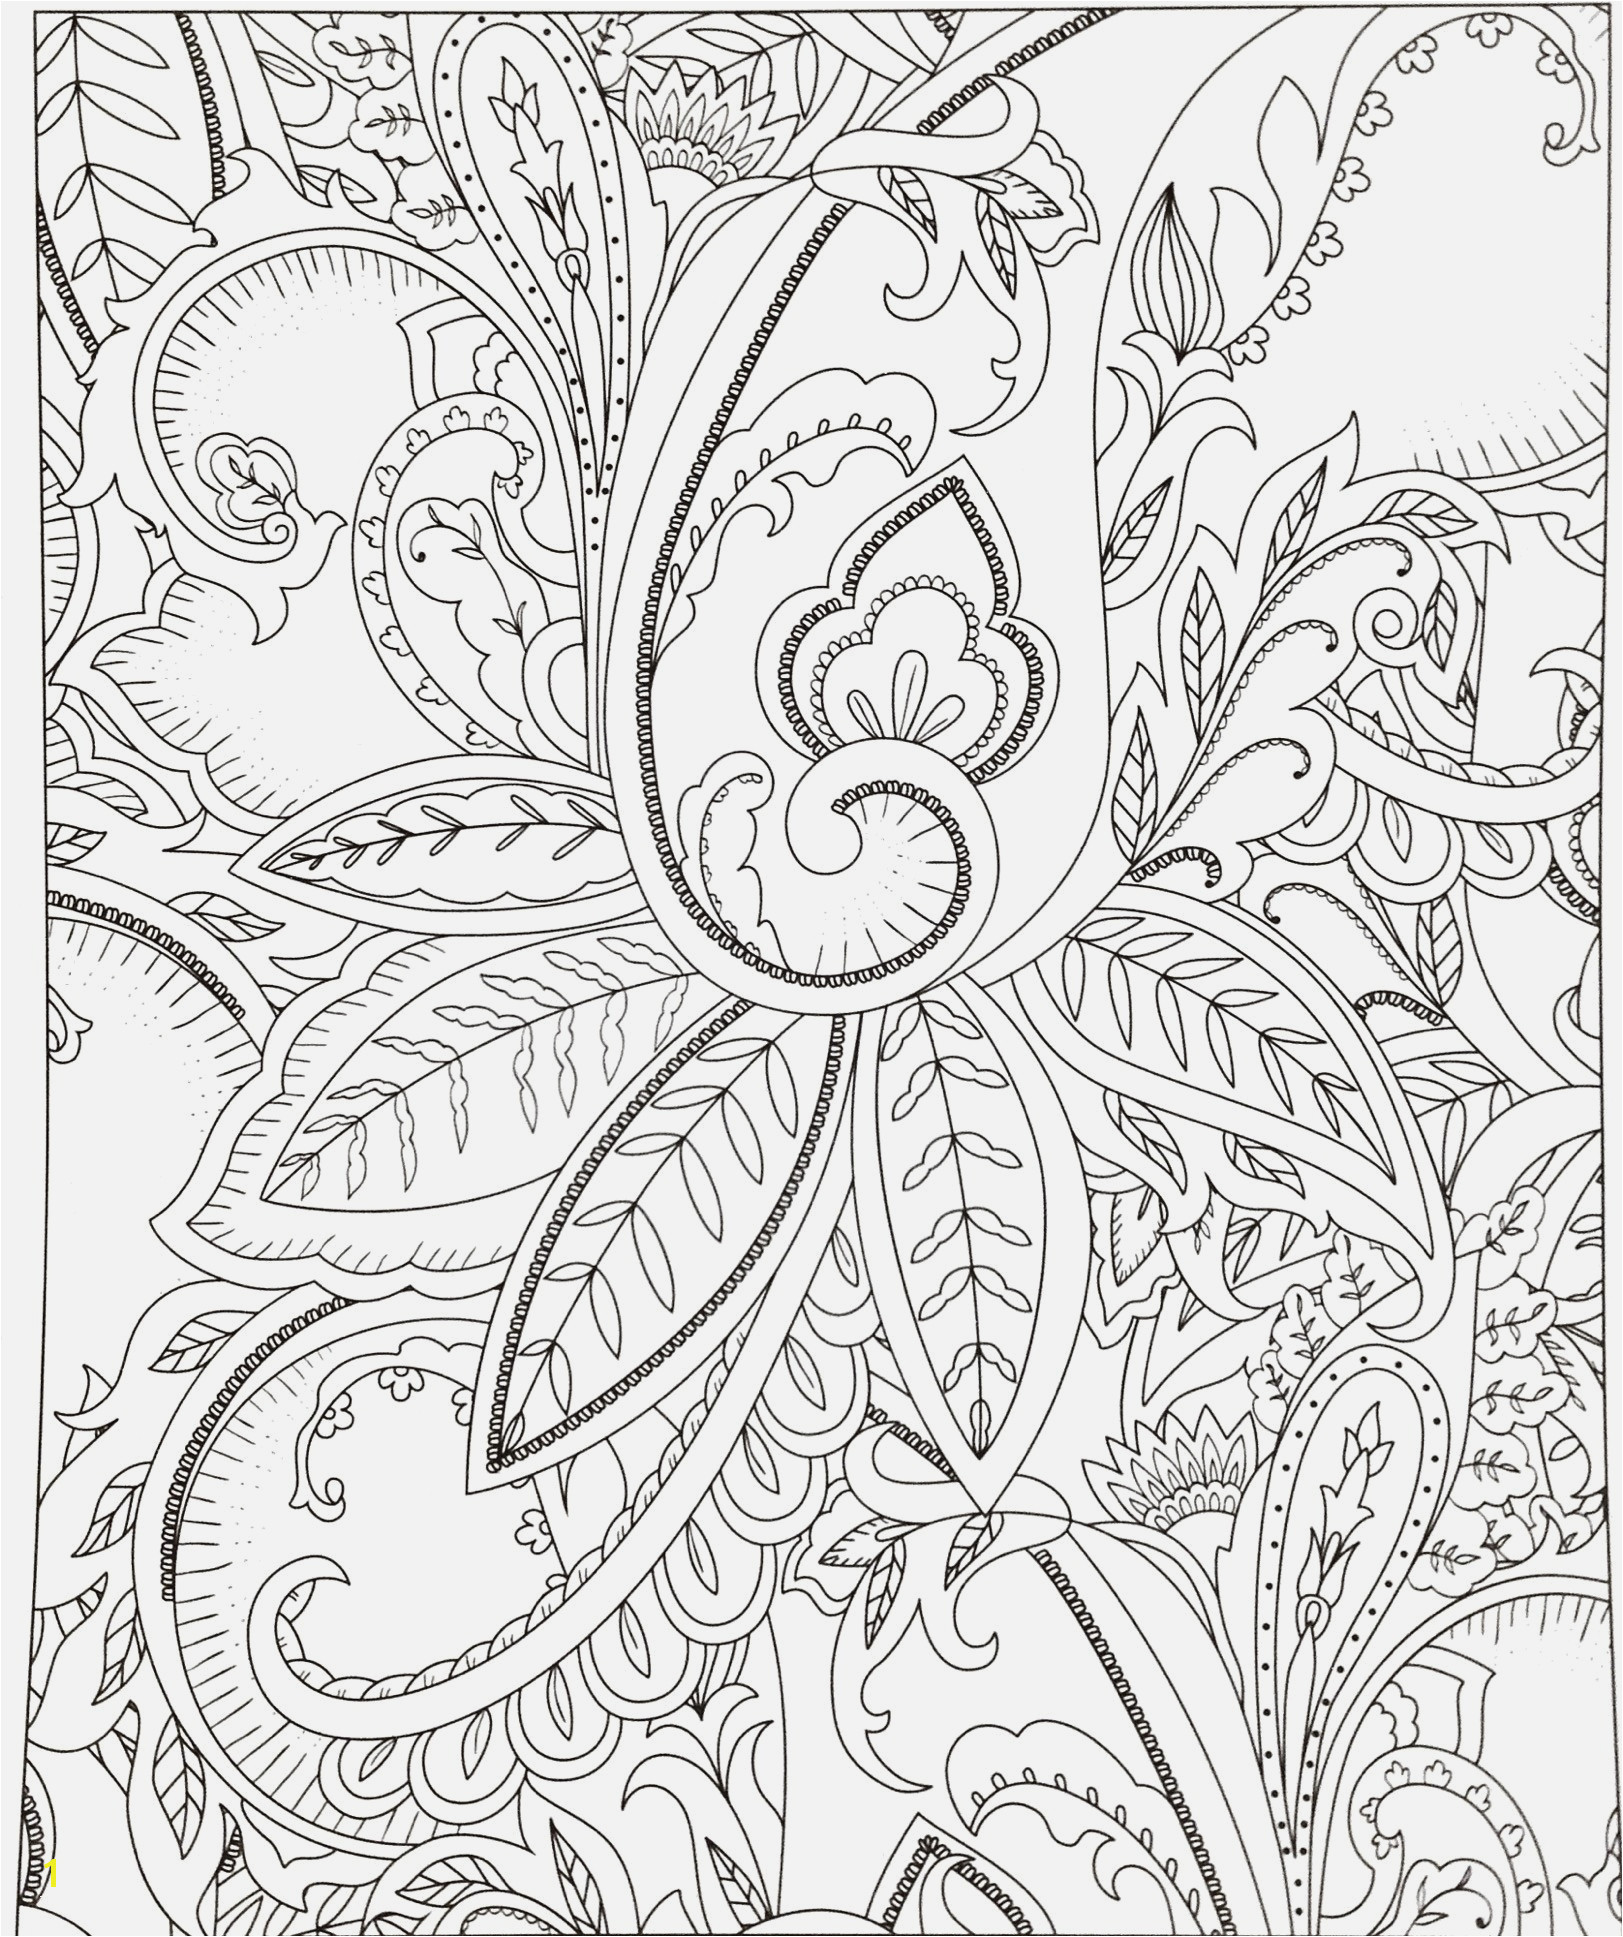 Free Flower Coloring Pages Best Ever 28 Unique Coloring Printable Pages Cloud9vegas Free Flower Coloring